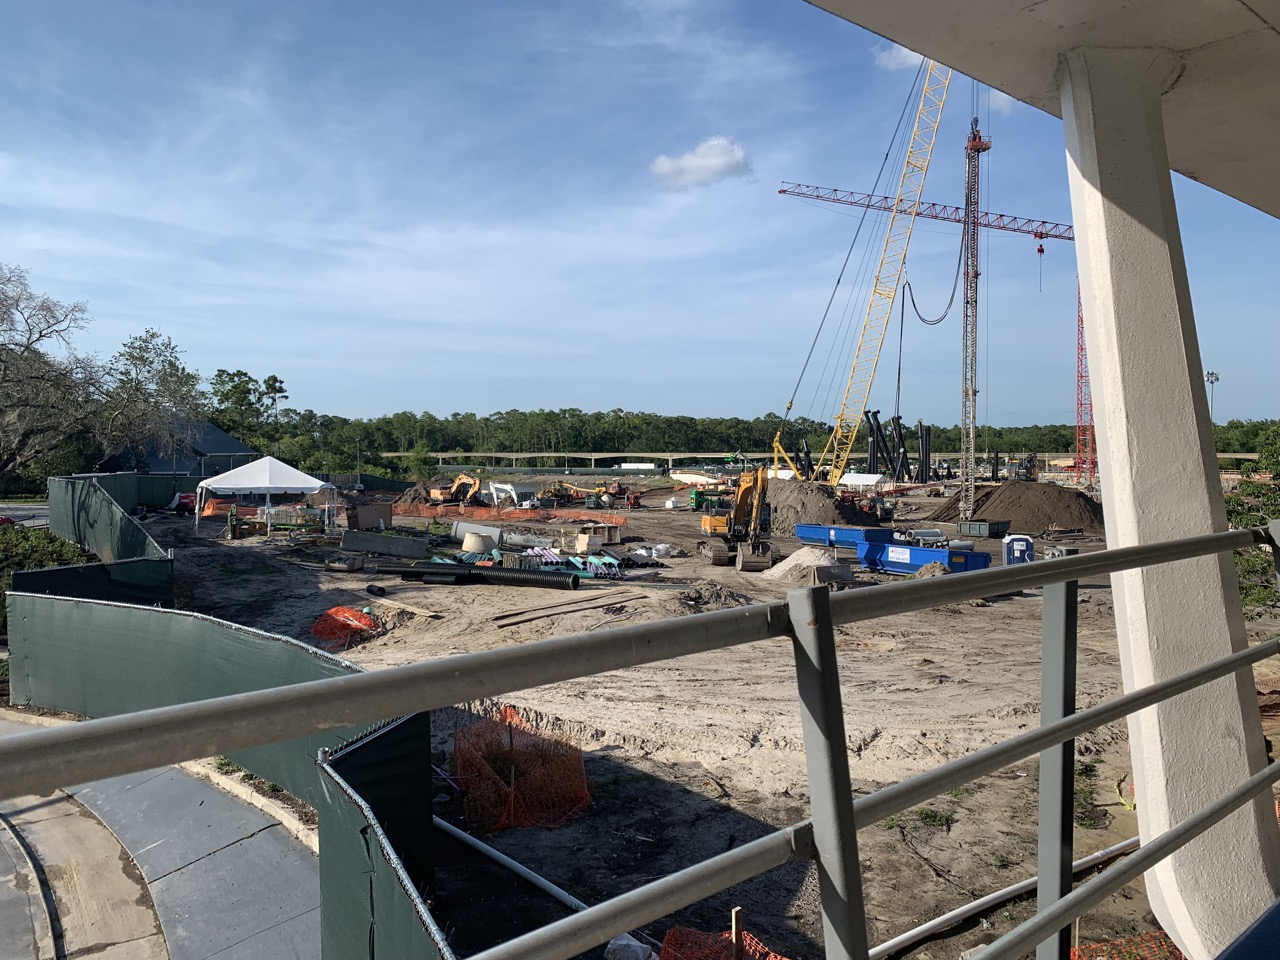 disney world trip report early summer 2019 day five construction 11.jpeg